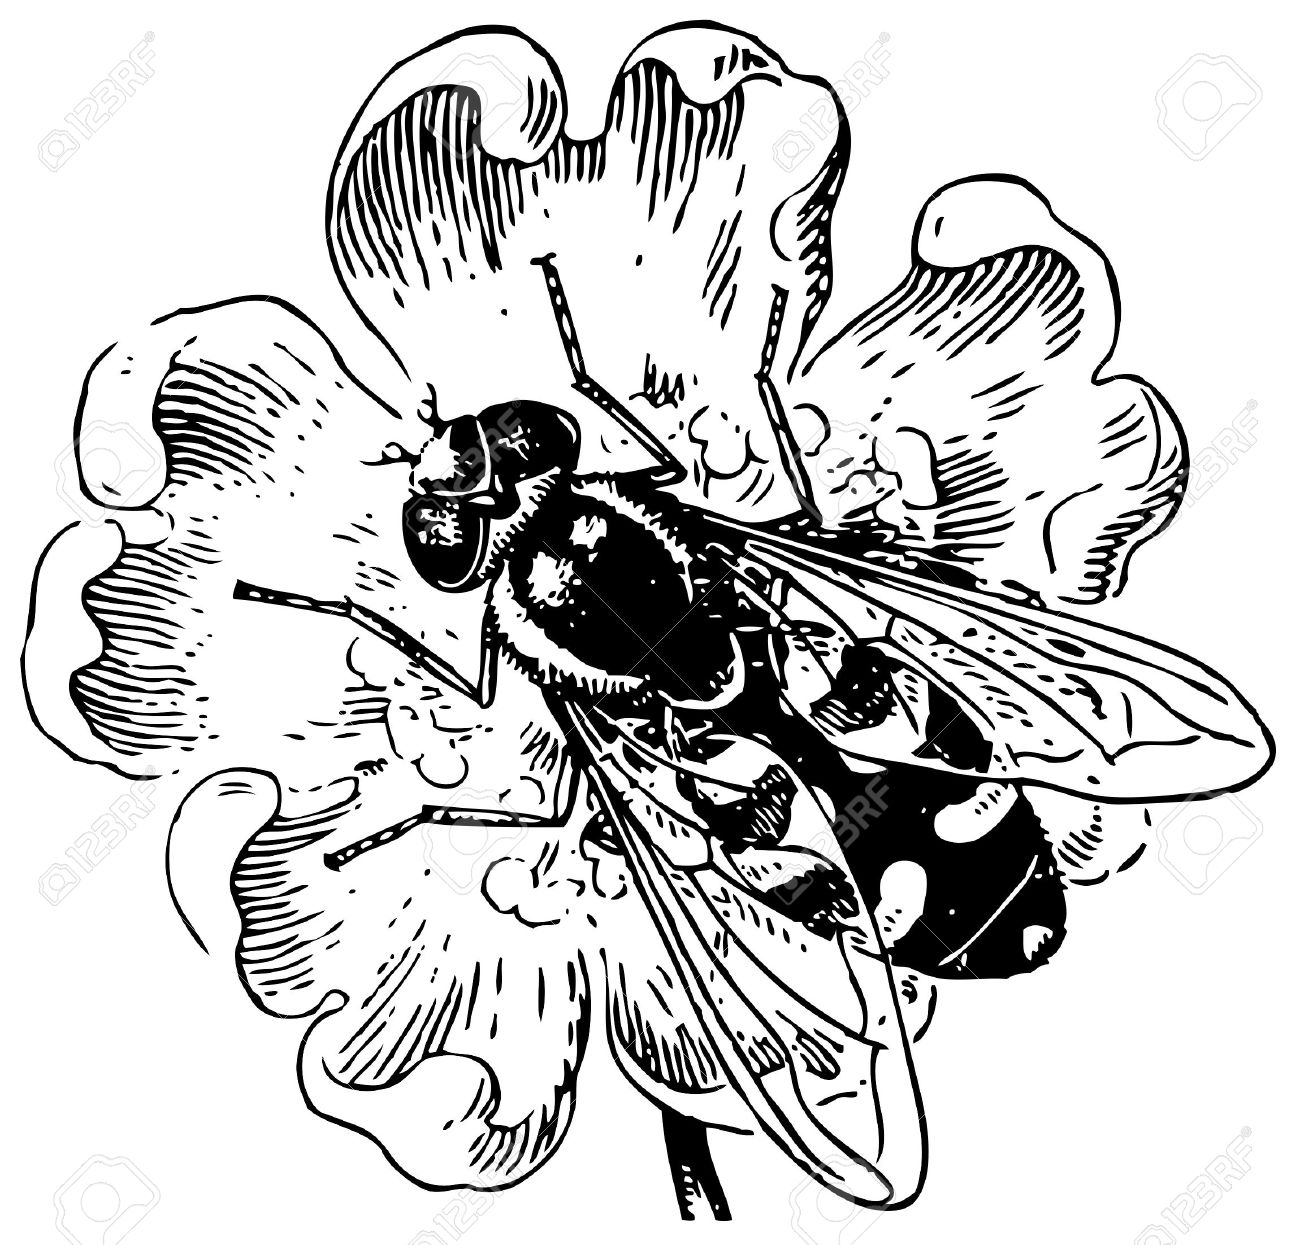 Hoverfly clipart #2, Download drawings